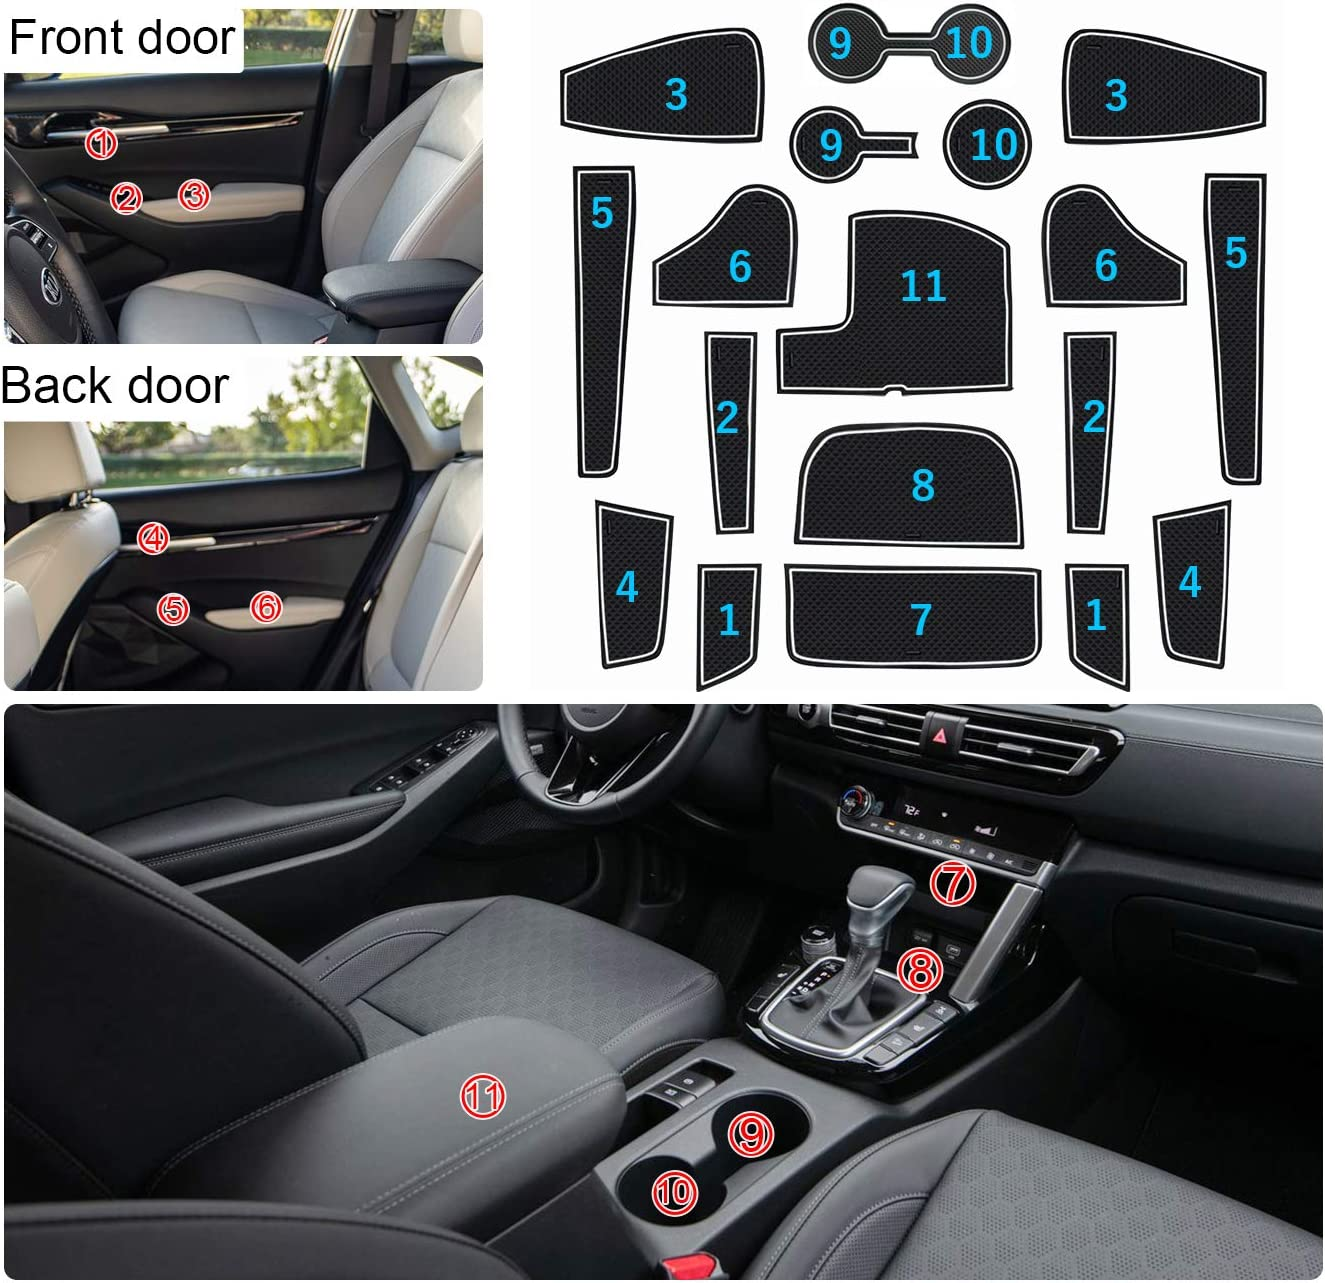 Interior Gate Slot Pad Slip Protection Cup Mats Rubber Non-Slip Dust Mat Kit Auto Decoration Accessories TDPQR Car Door Groove Mat Non-Slip Door Slot Pad for Peugeot 5008 SUV 2017-2020